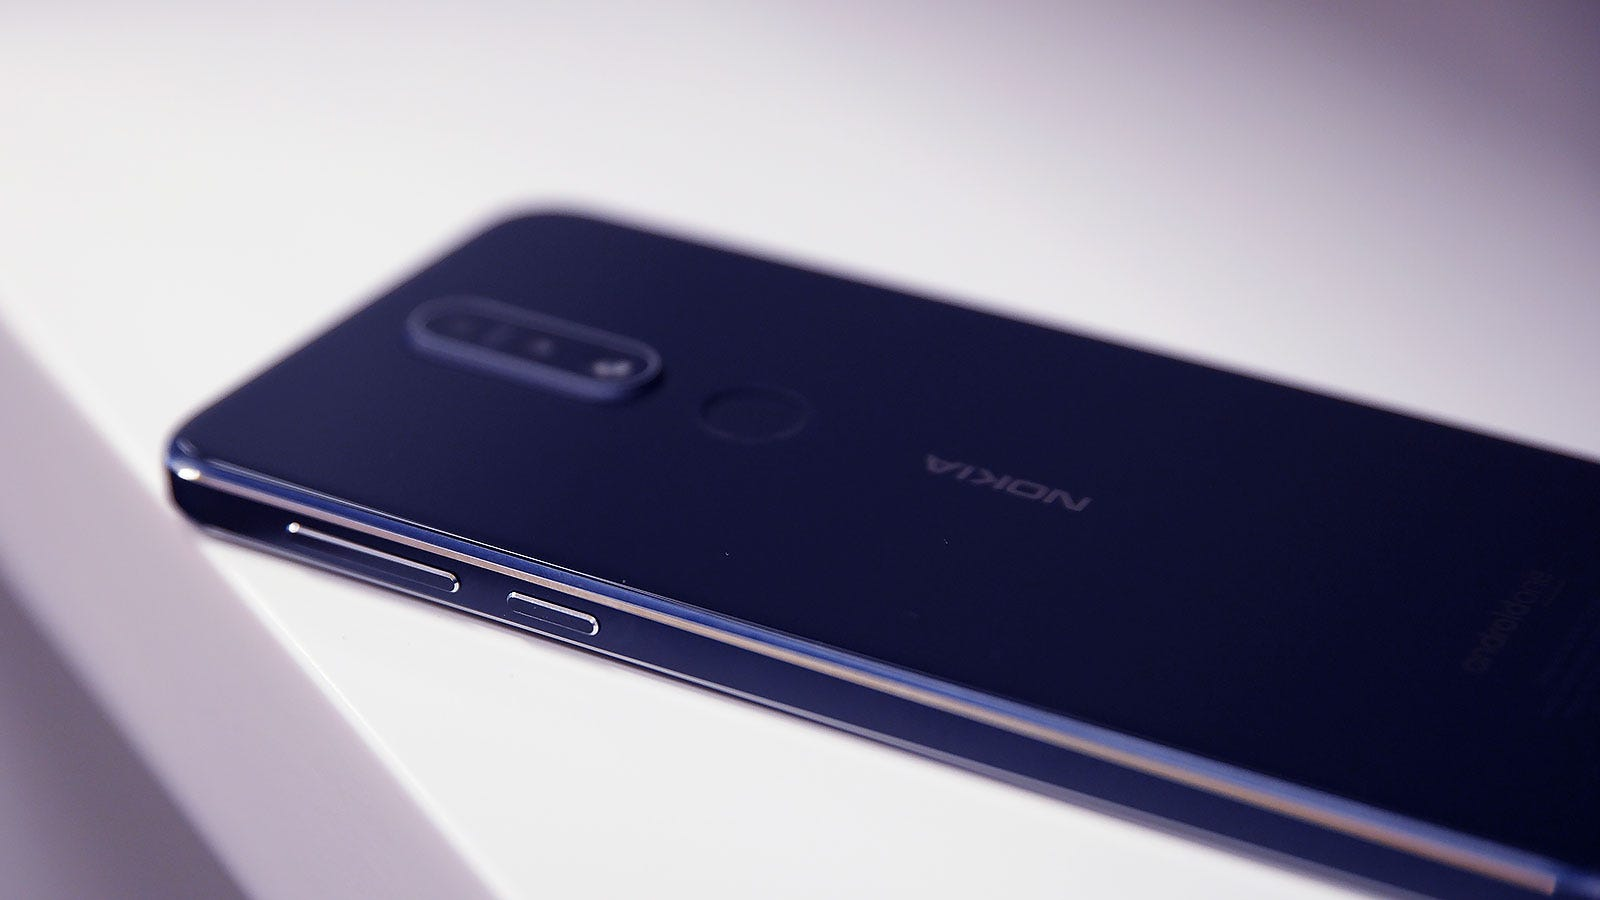 The 7.1's chamfered edges are a nice touch you rarely see on phones this cheap.